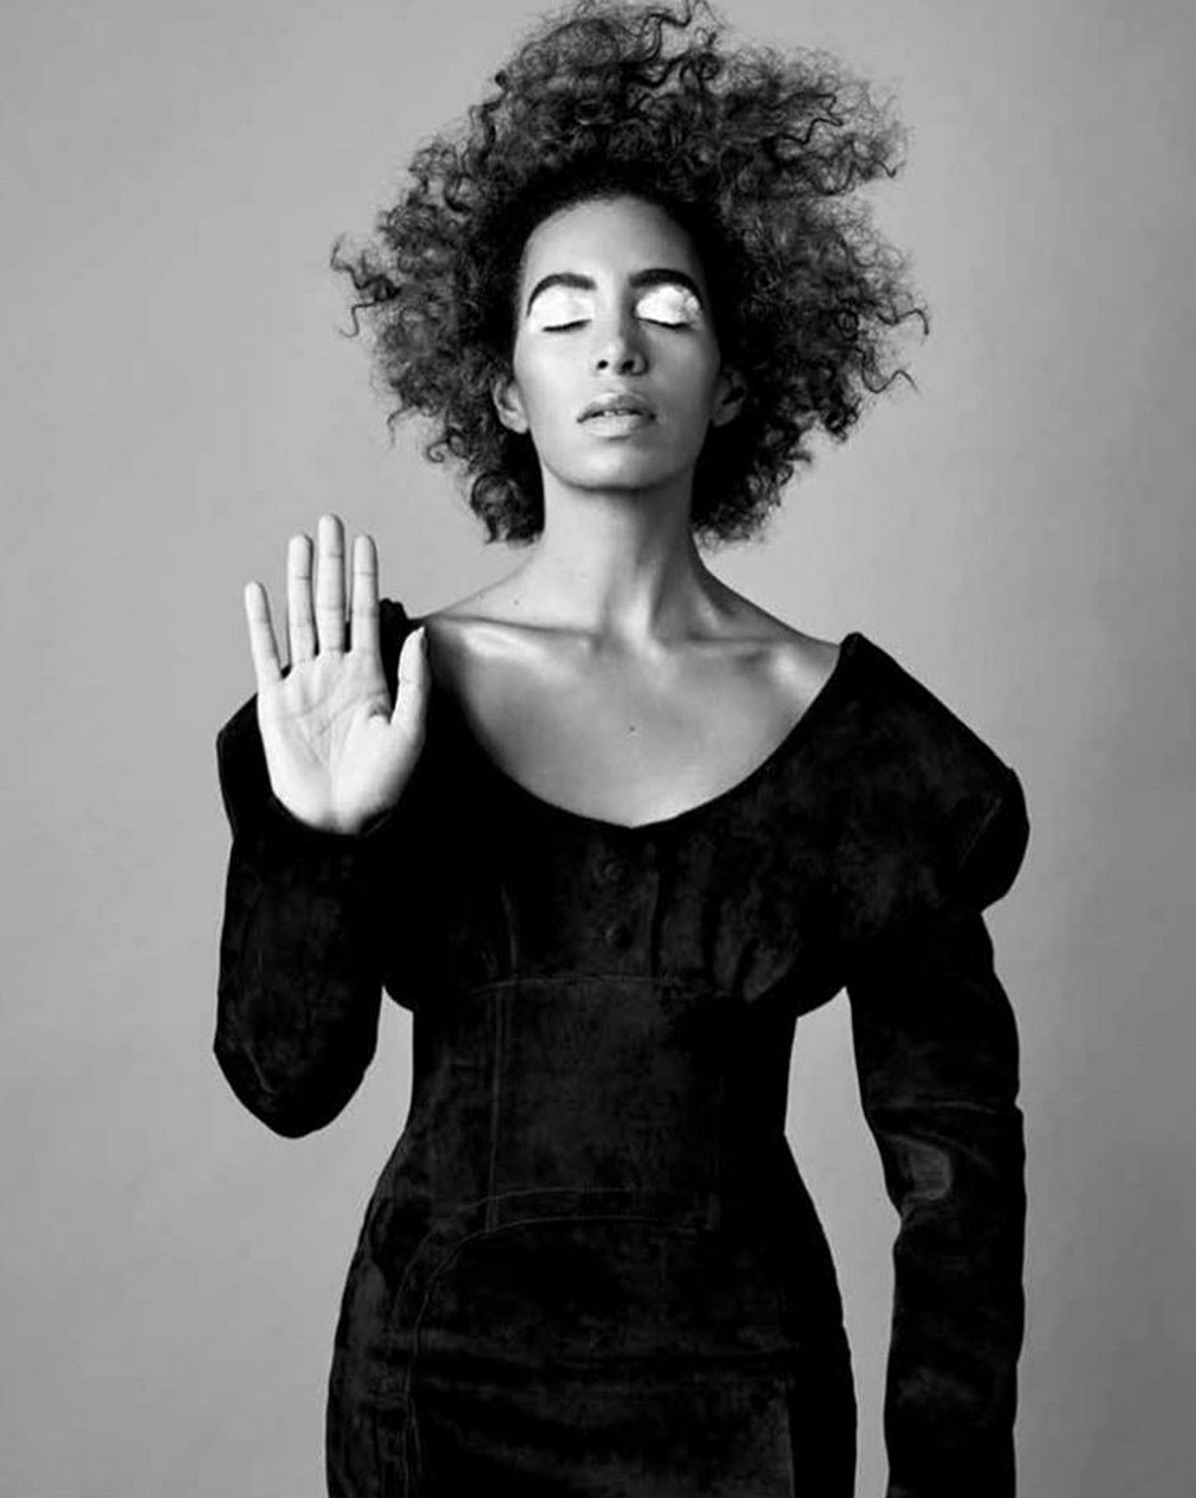 Image result for solange bust magazine